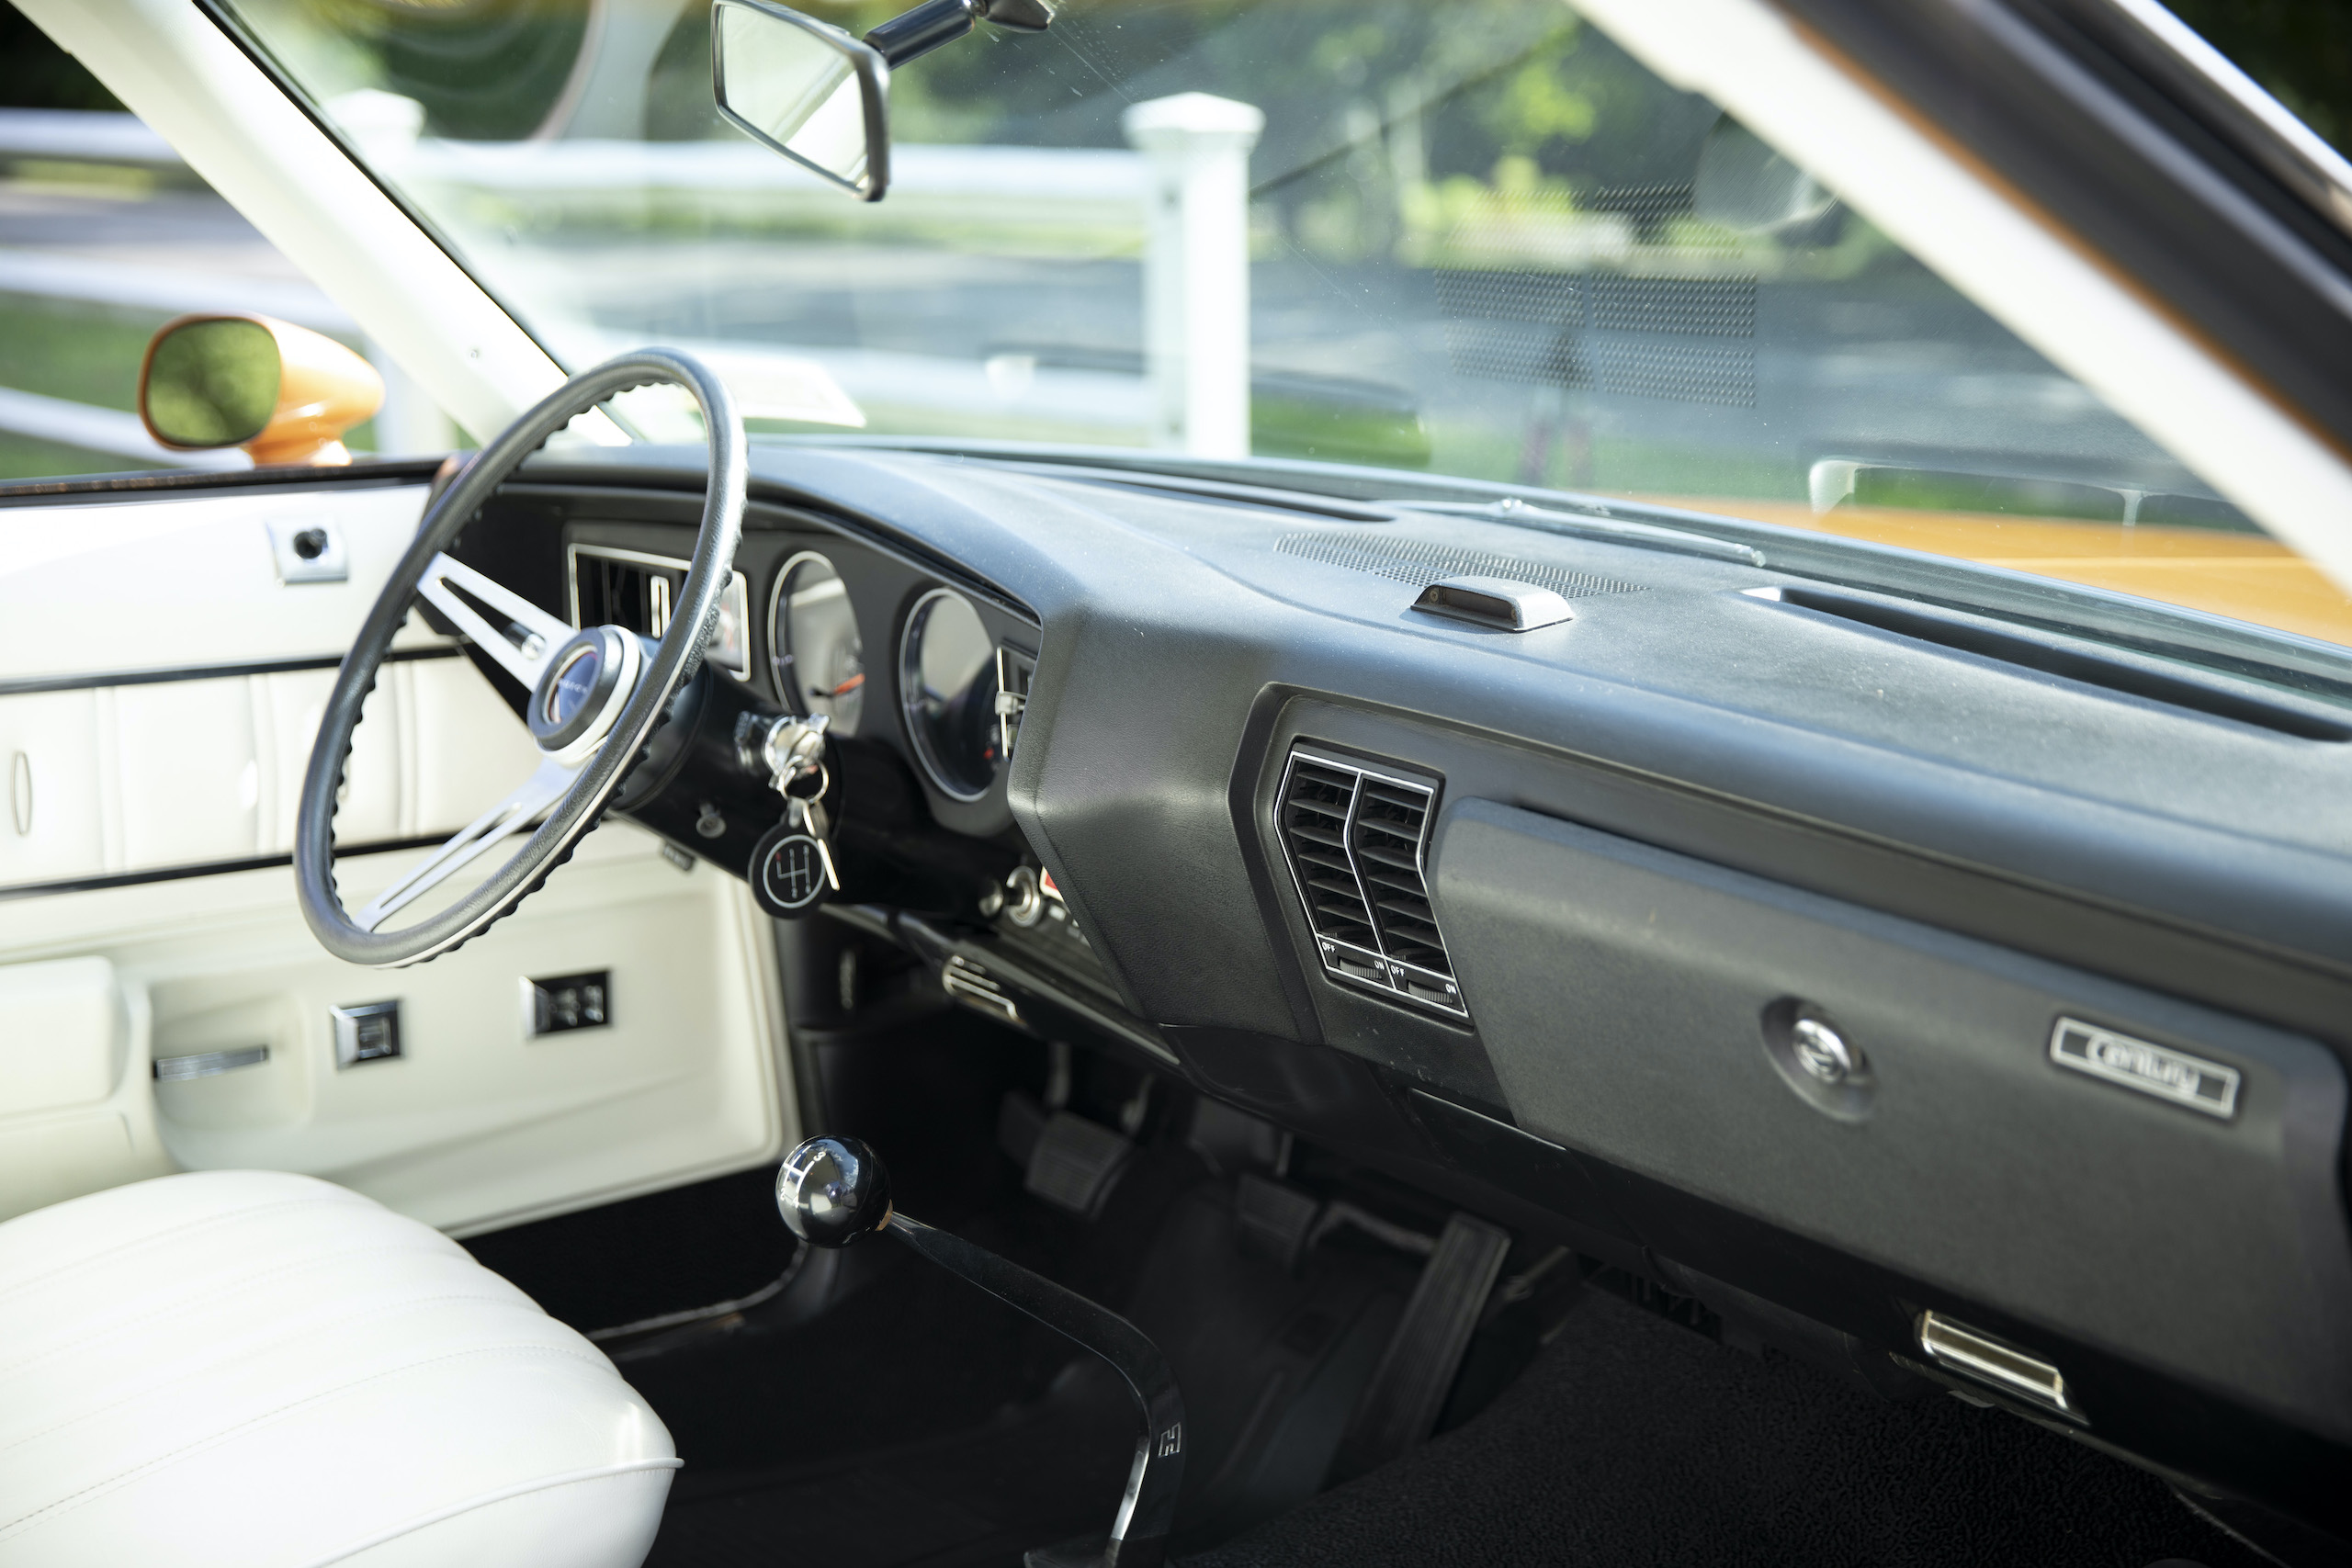 1973 Buick GS Stage 1 gran sport coupe front interior